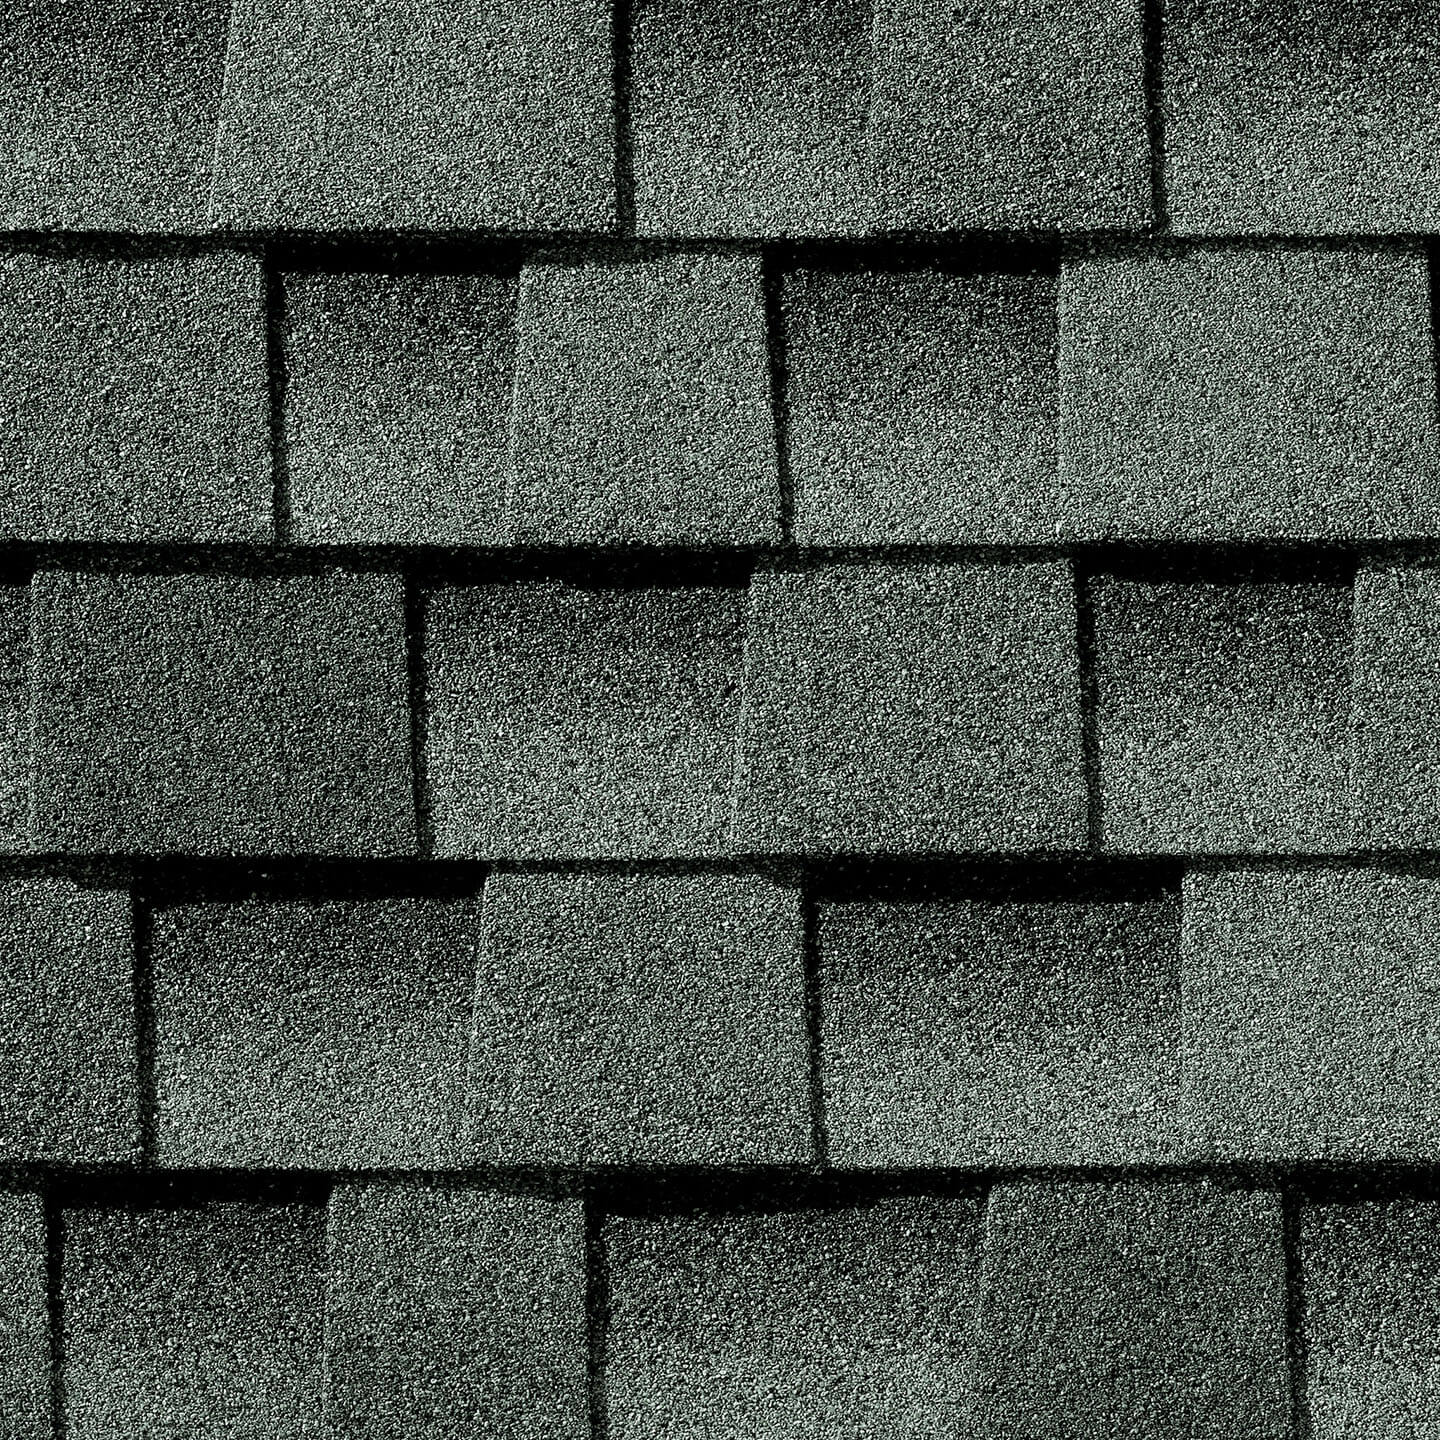 Timberline Slate shingle sample